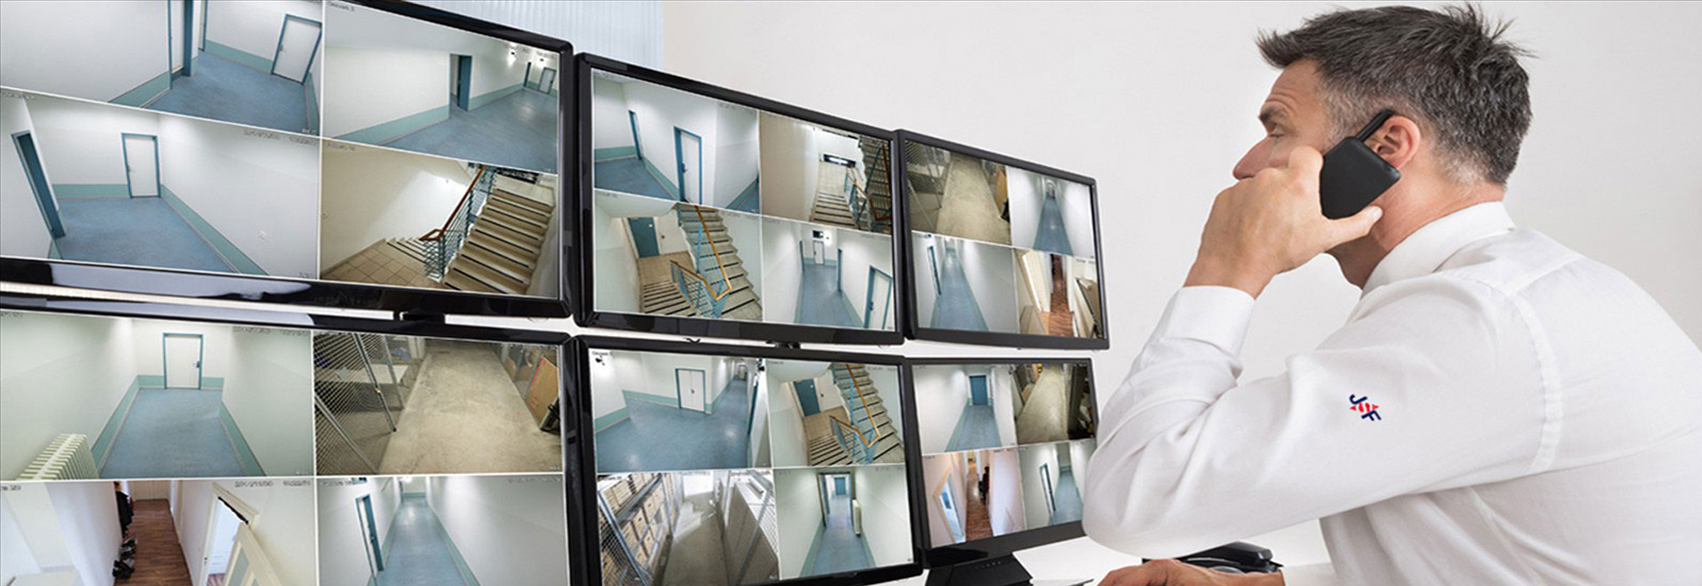 high security cleaning services